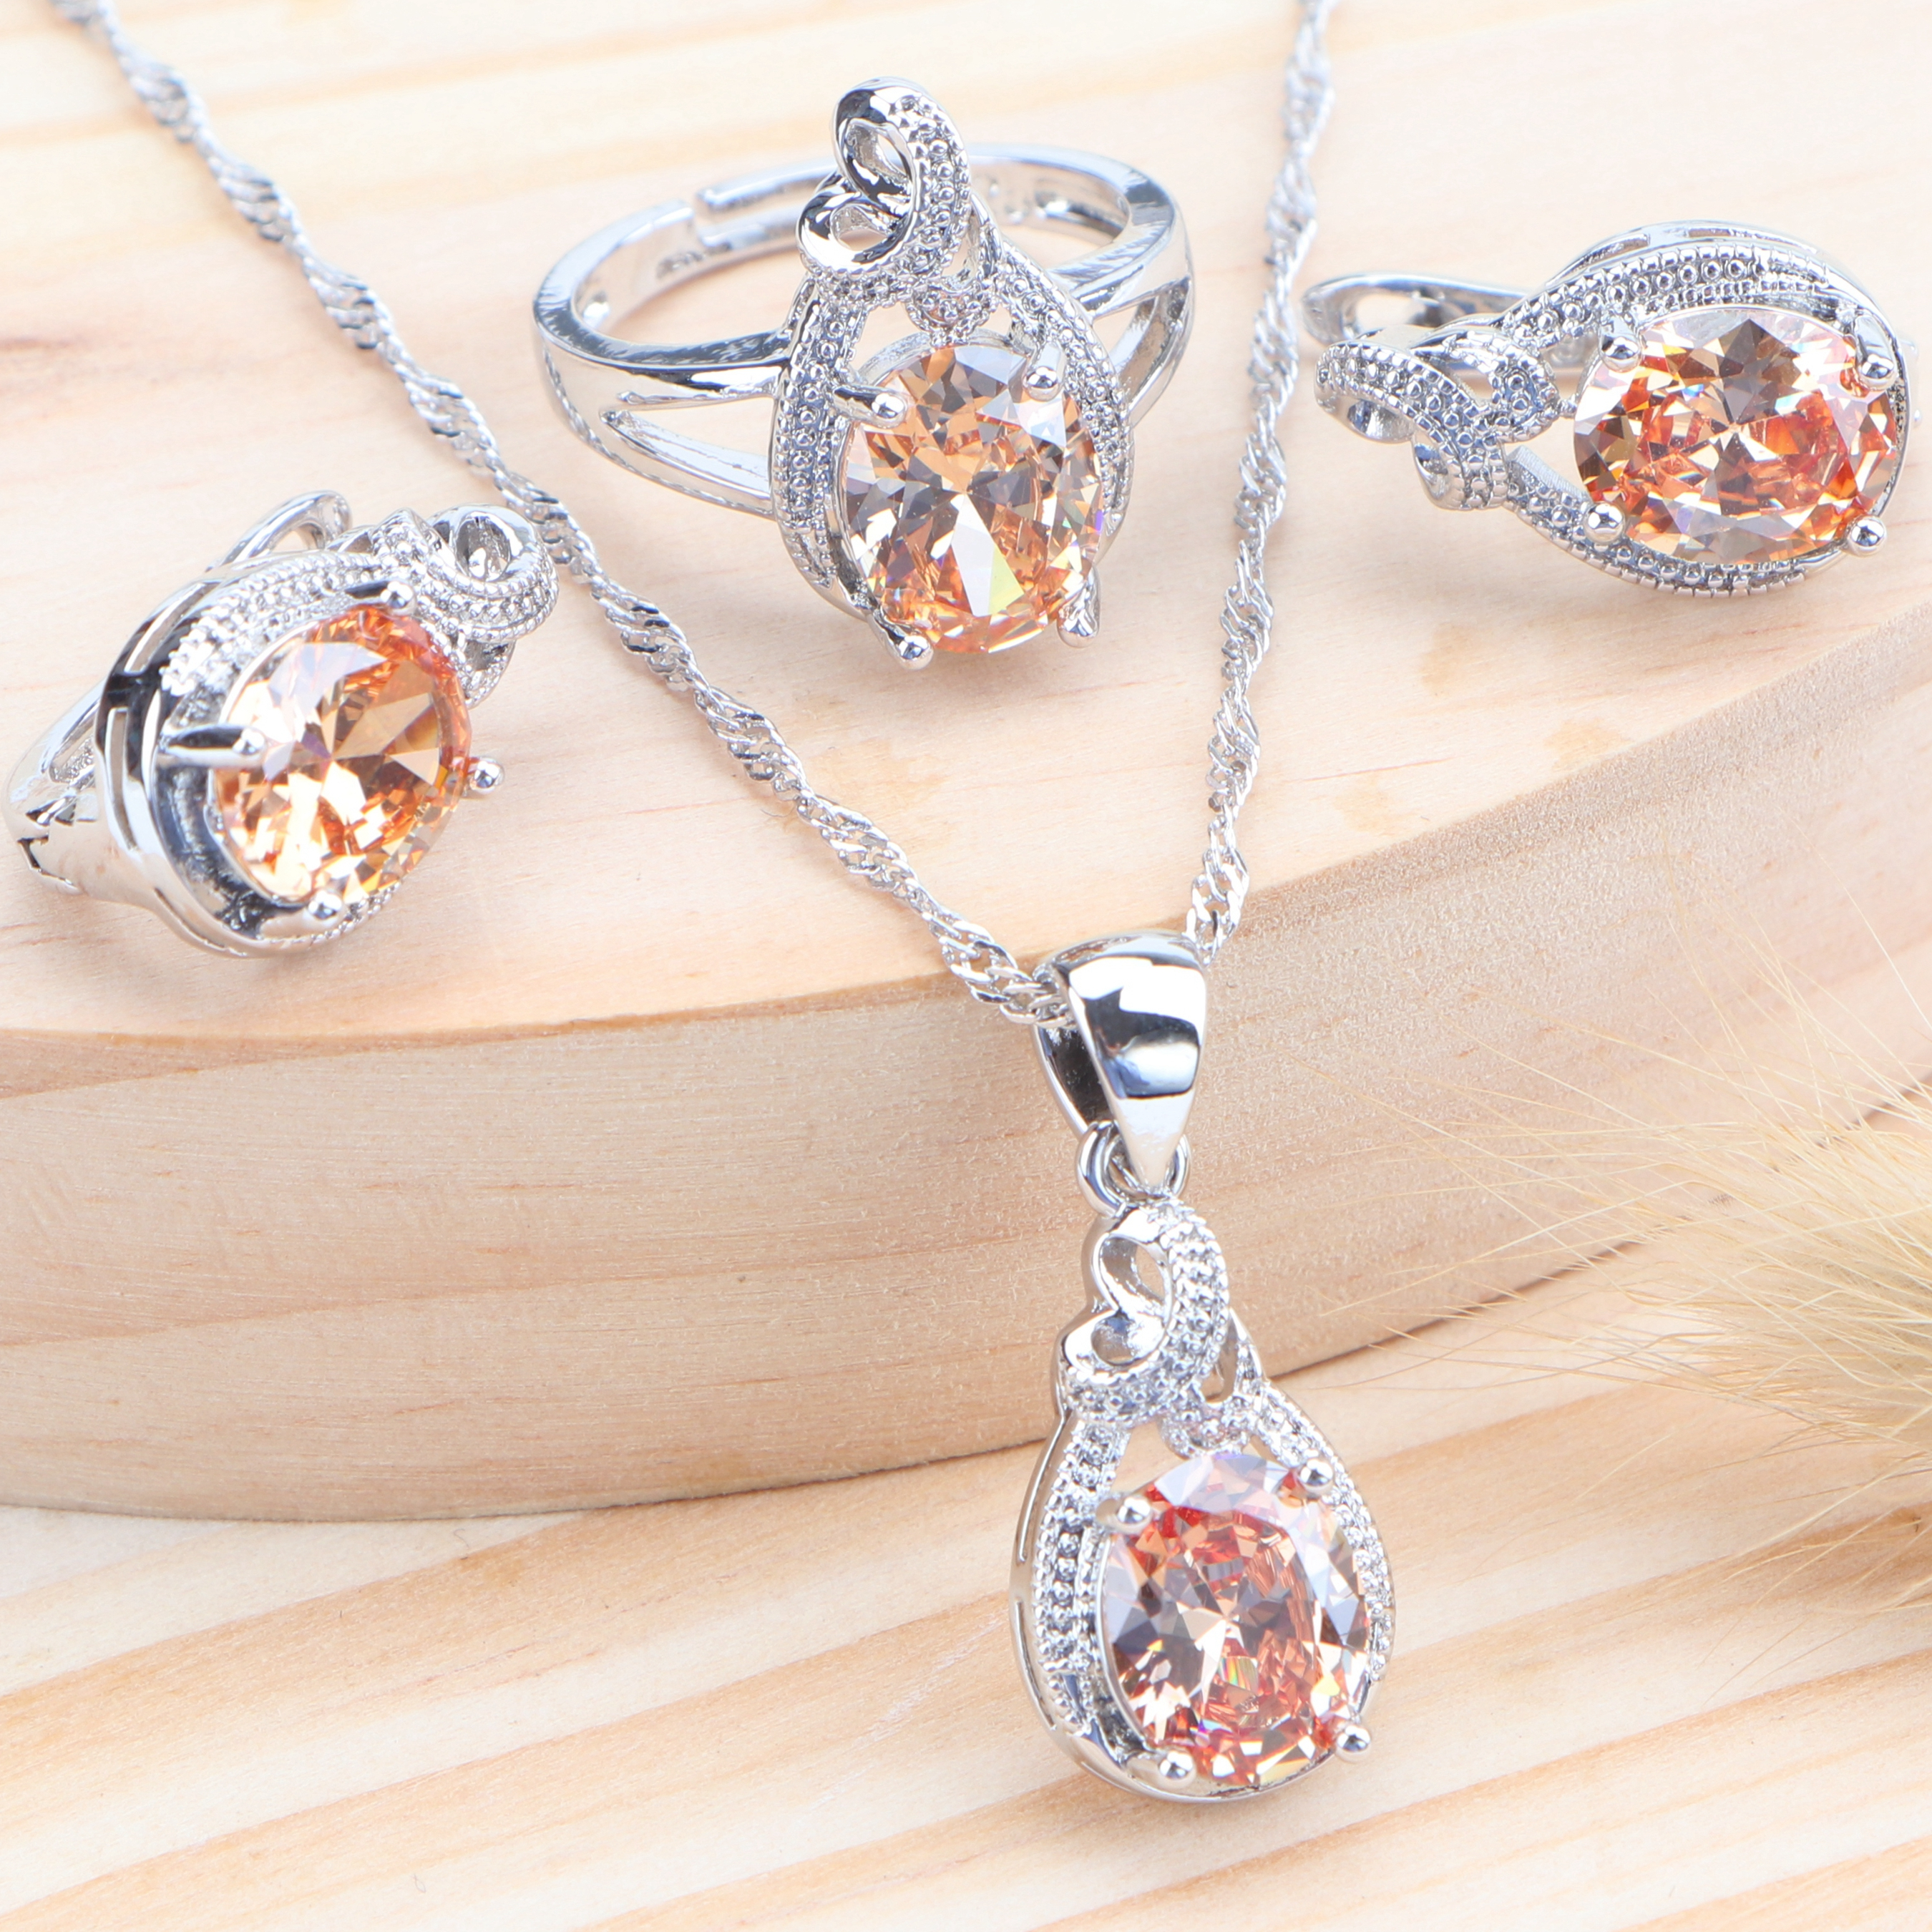 2019 Zirconia Silver 925 Bridal Jewelry Sets Kids Wedding Jewelry Earrings Rings Necklace Pendant Set For Women Accessories